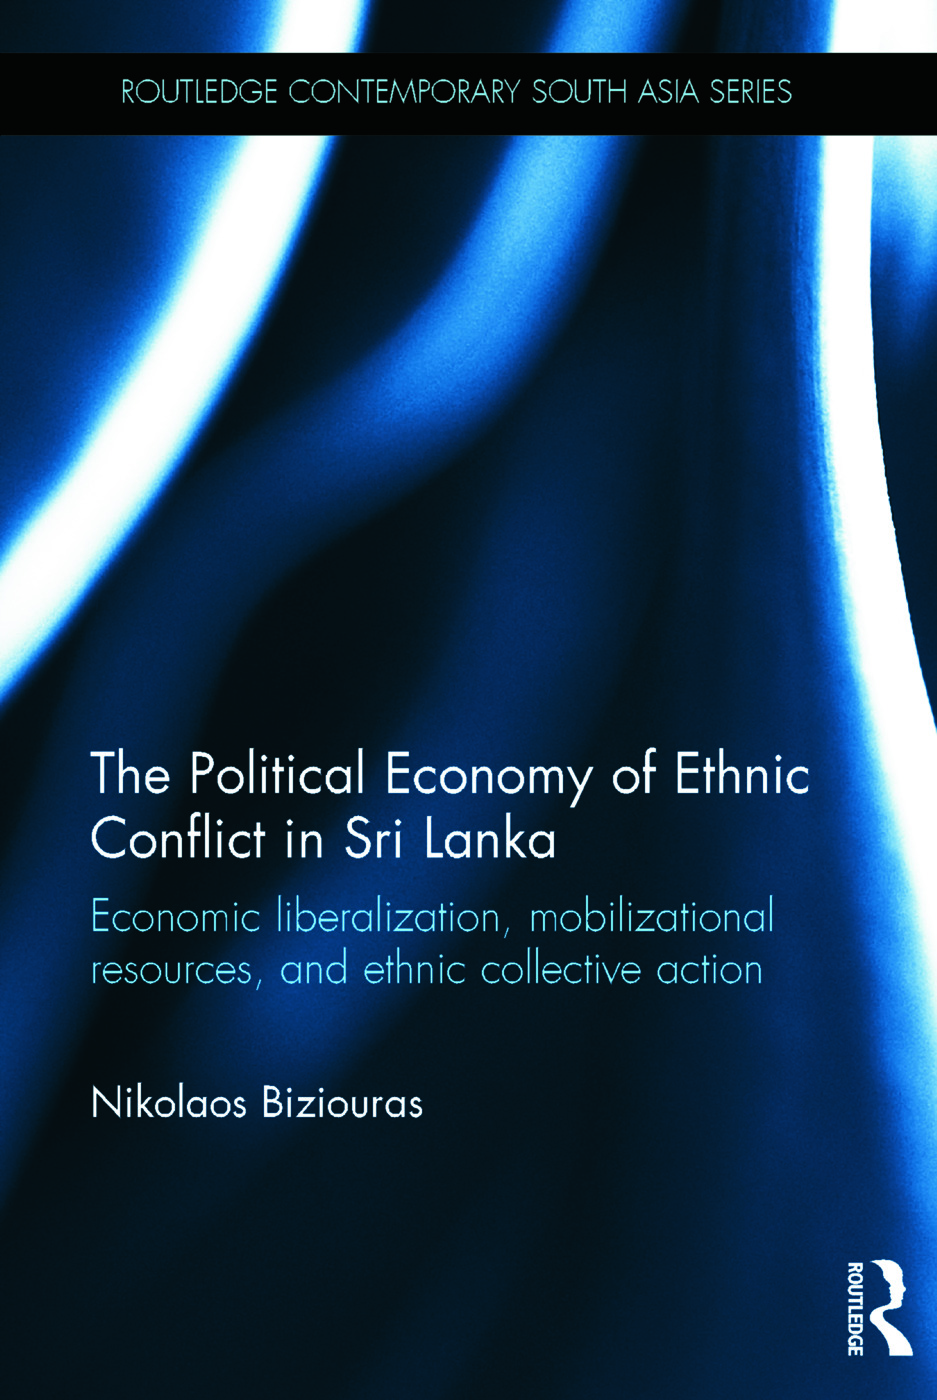 Medium economic liberalization and the emergence of the Sinhalese critical mass (1956–65)